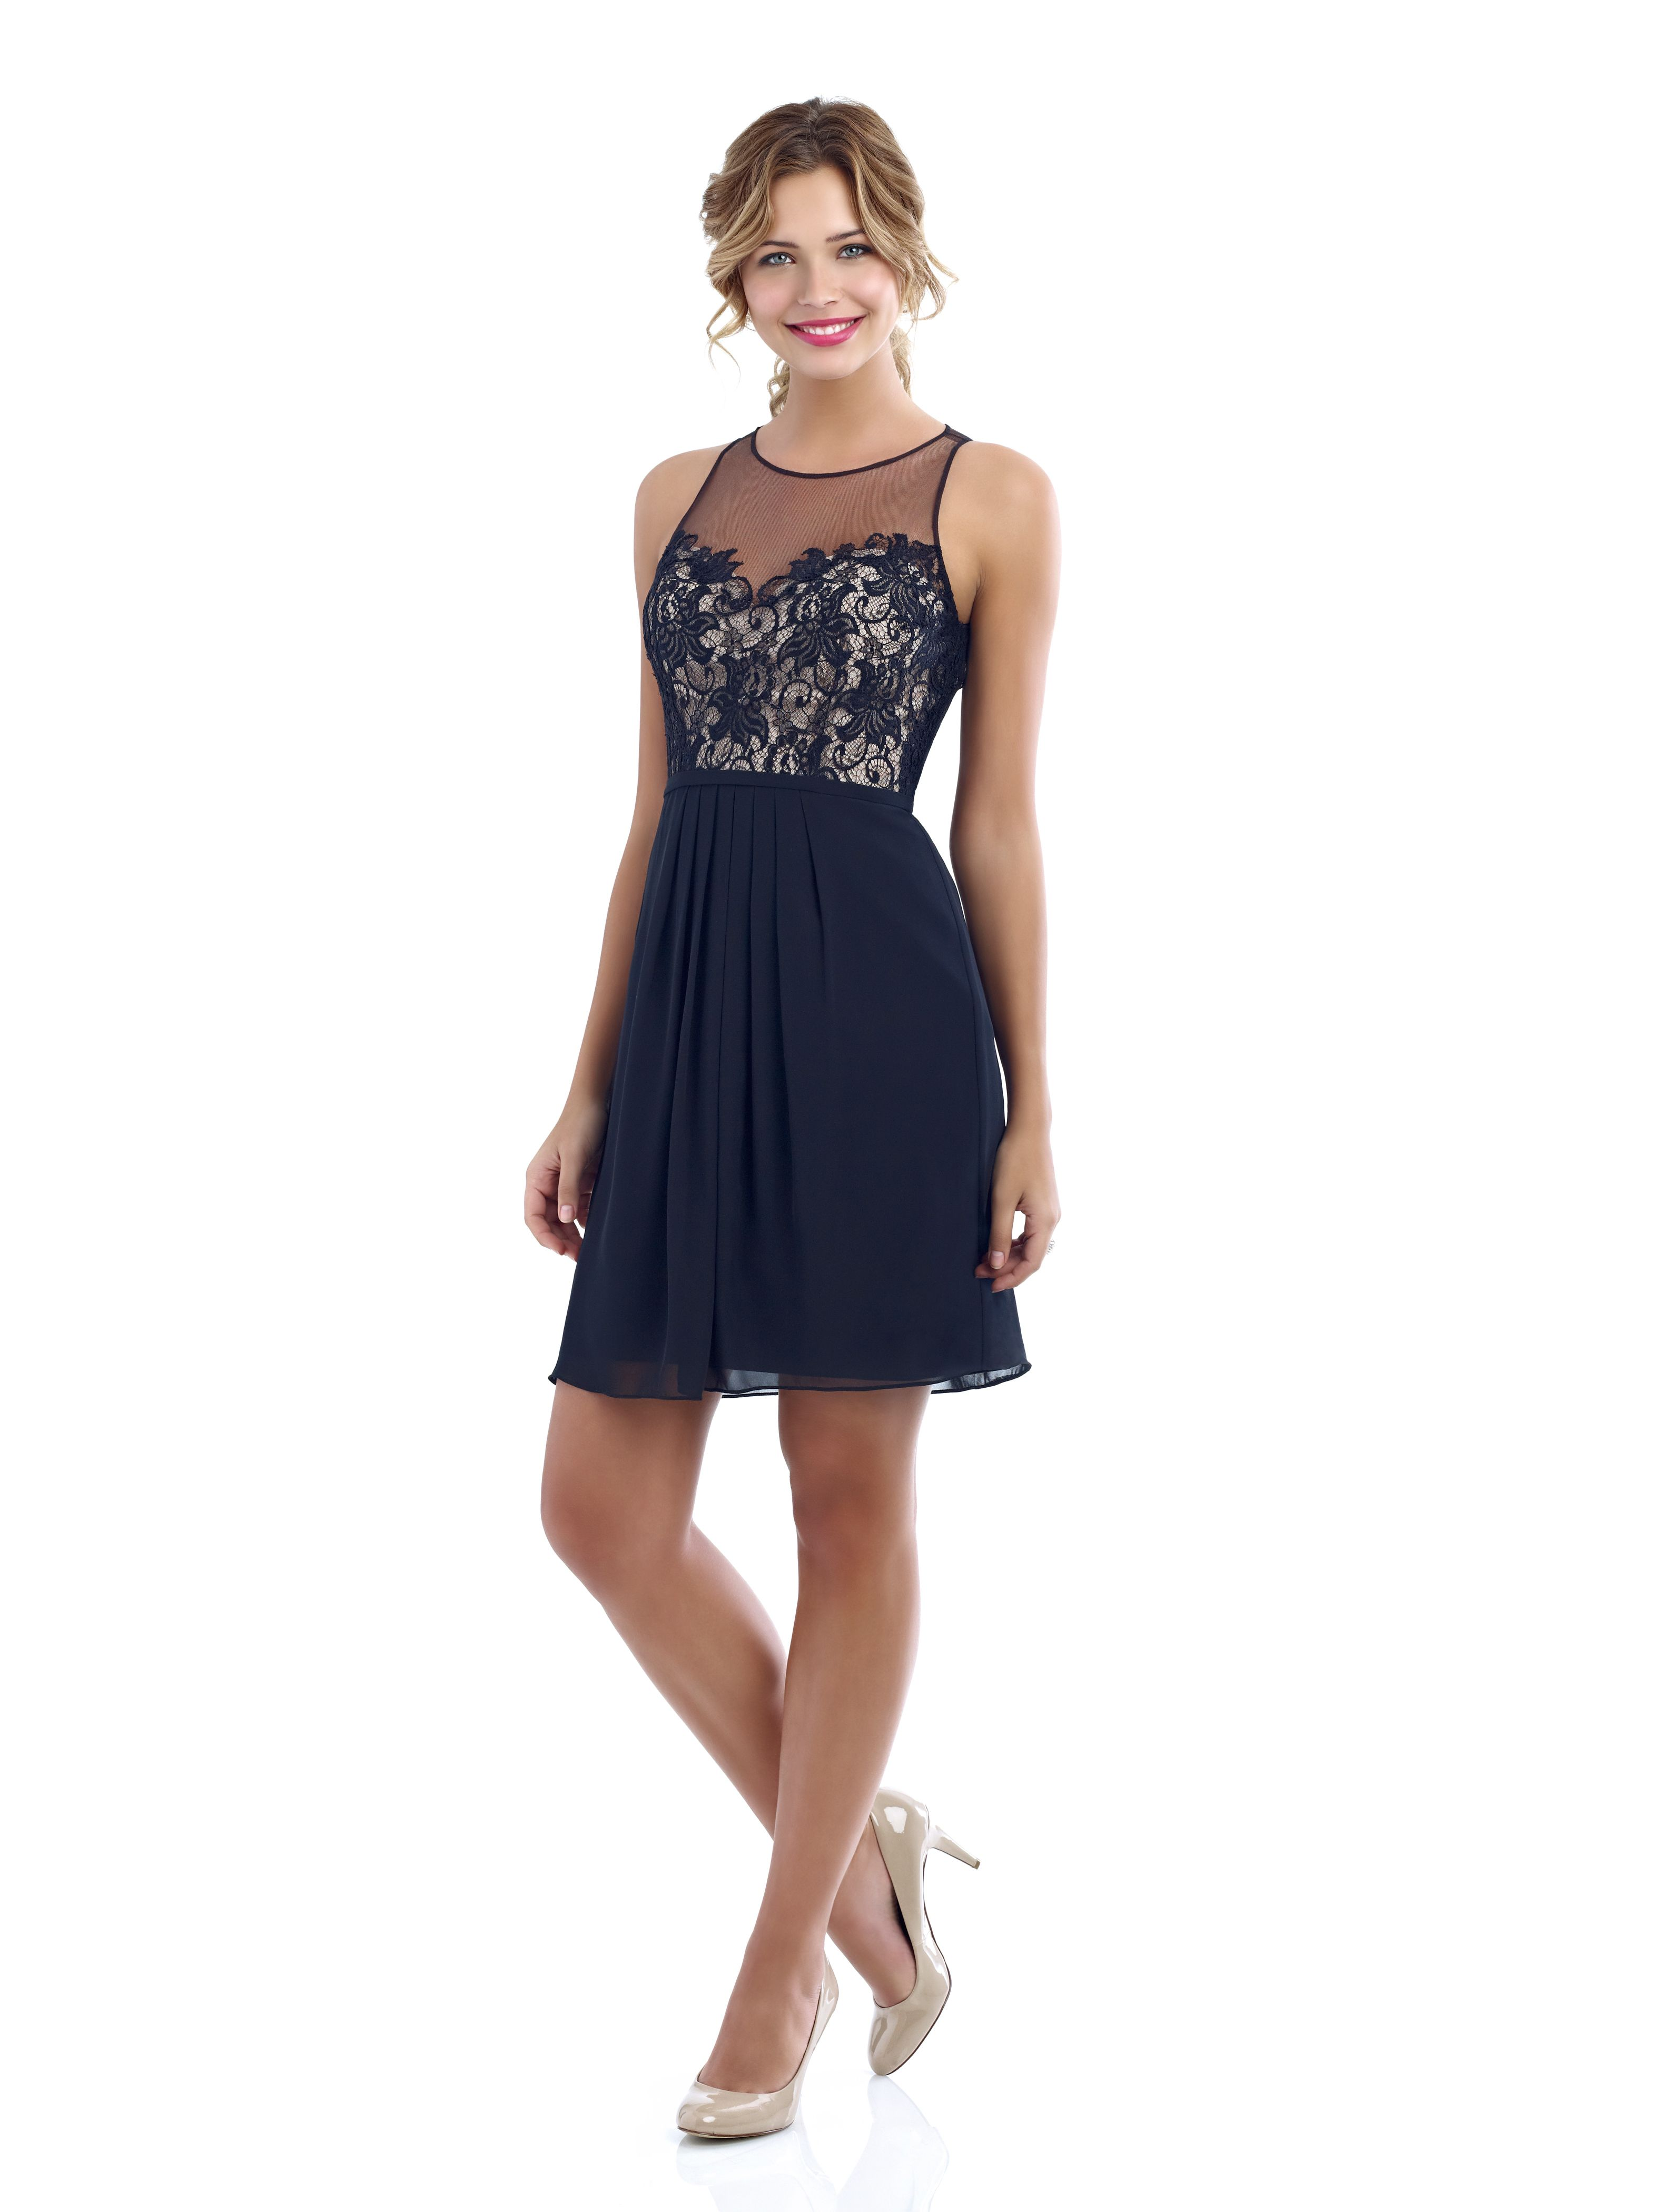 4214: Short chiffon bridesmaid dress with lace bodice and ...